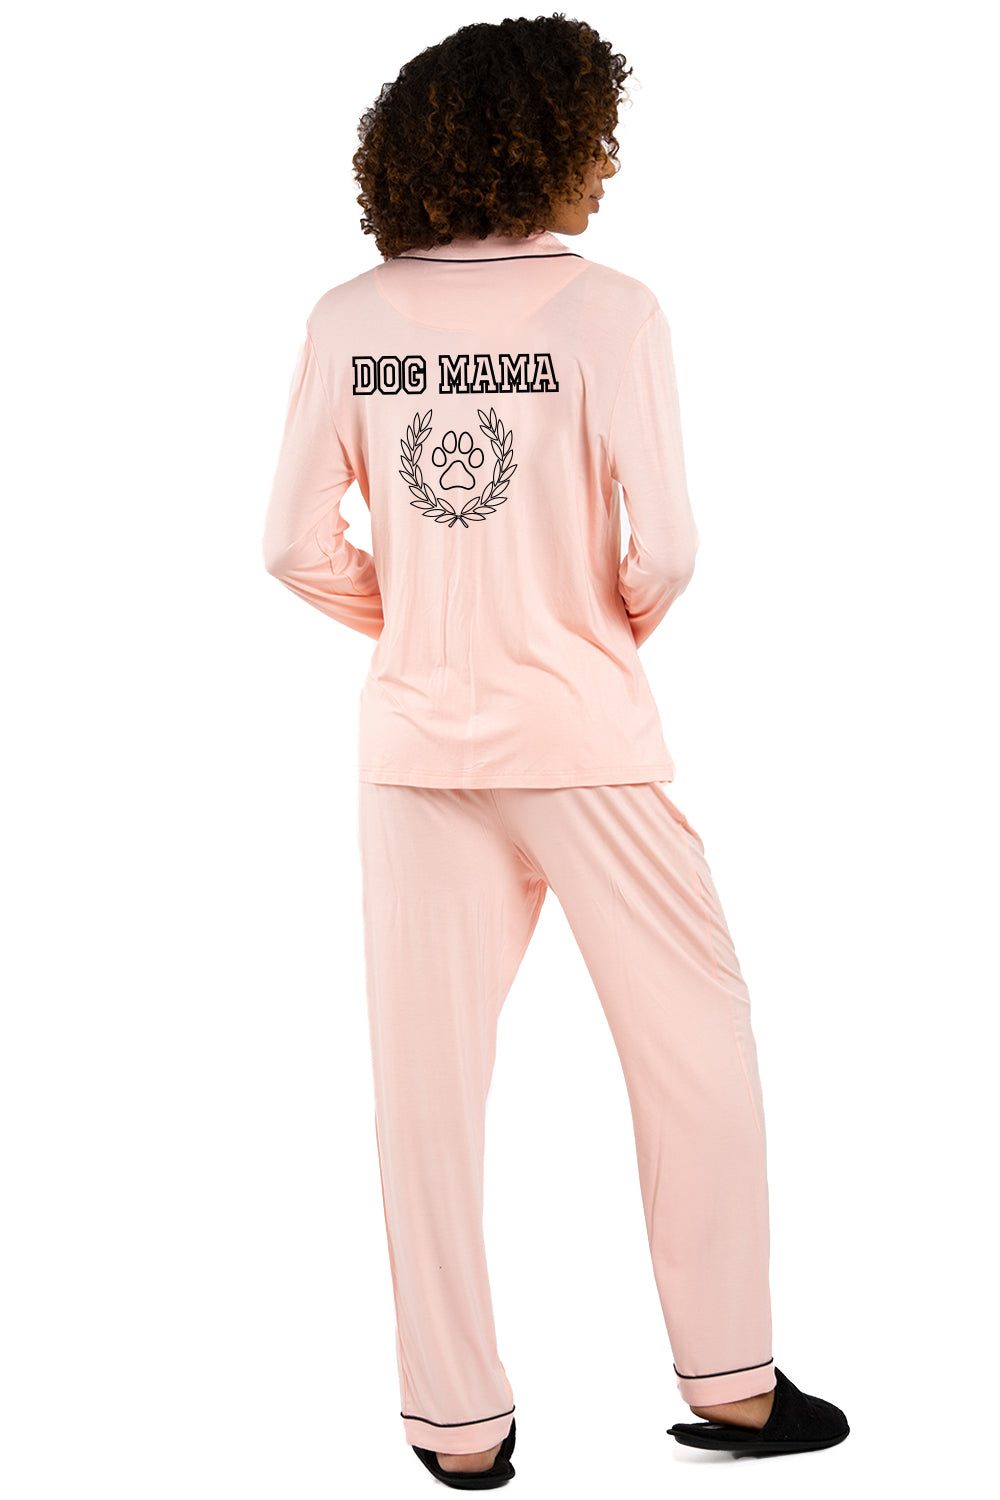 LIGHTWEIGHT PAJAMA SET -Dog Mama